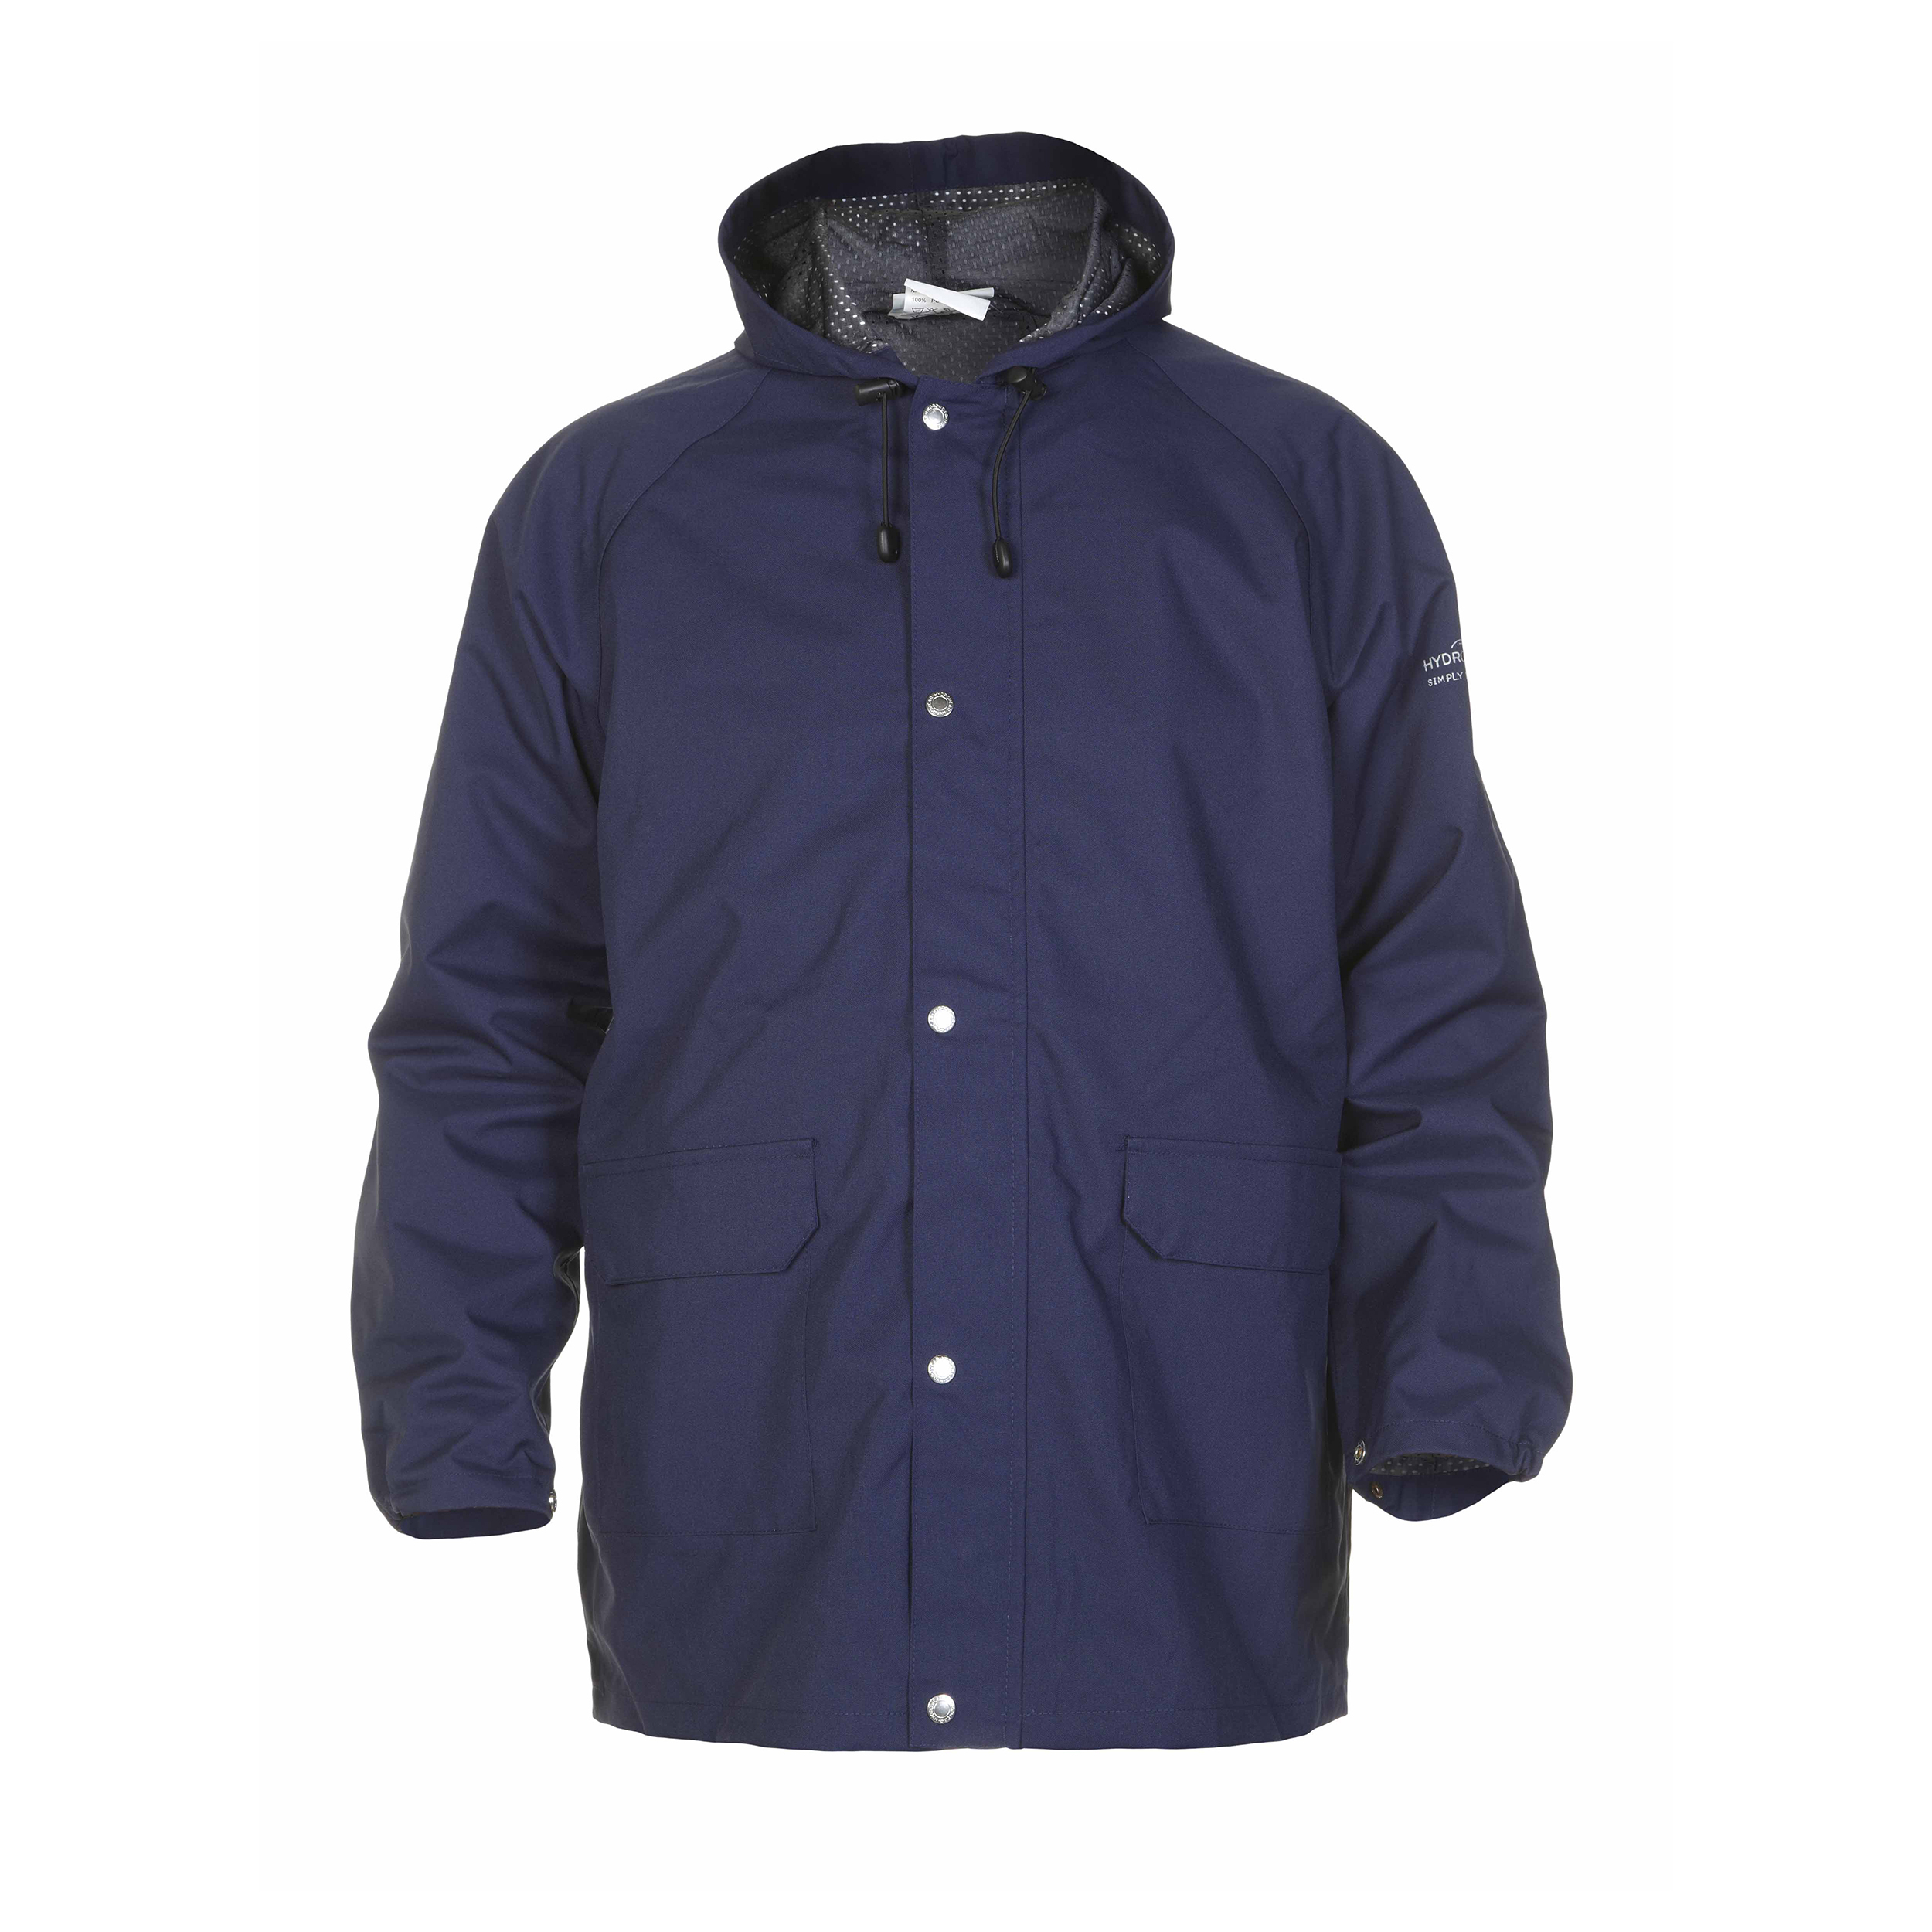 High Visibility Hydrowear Ulft SNS Waterproof Jacket Polyester Medium Navy Blue Ref HYD072400NM *Up to 3 Day Leadtime*